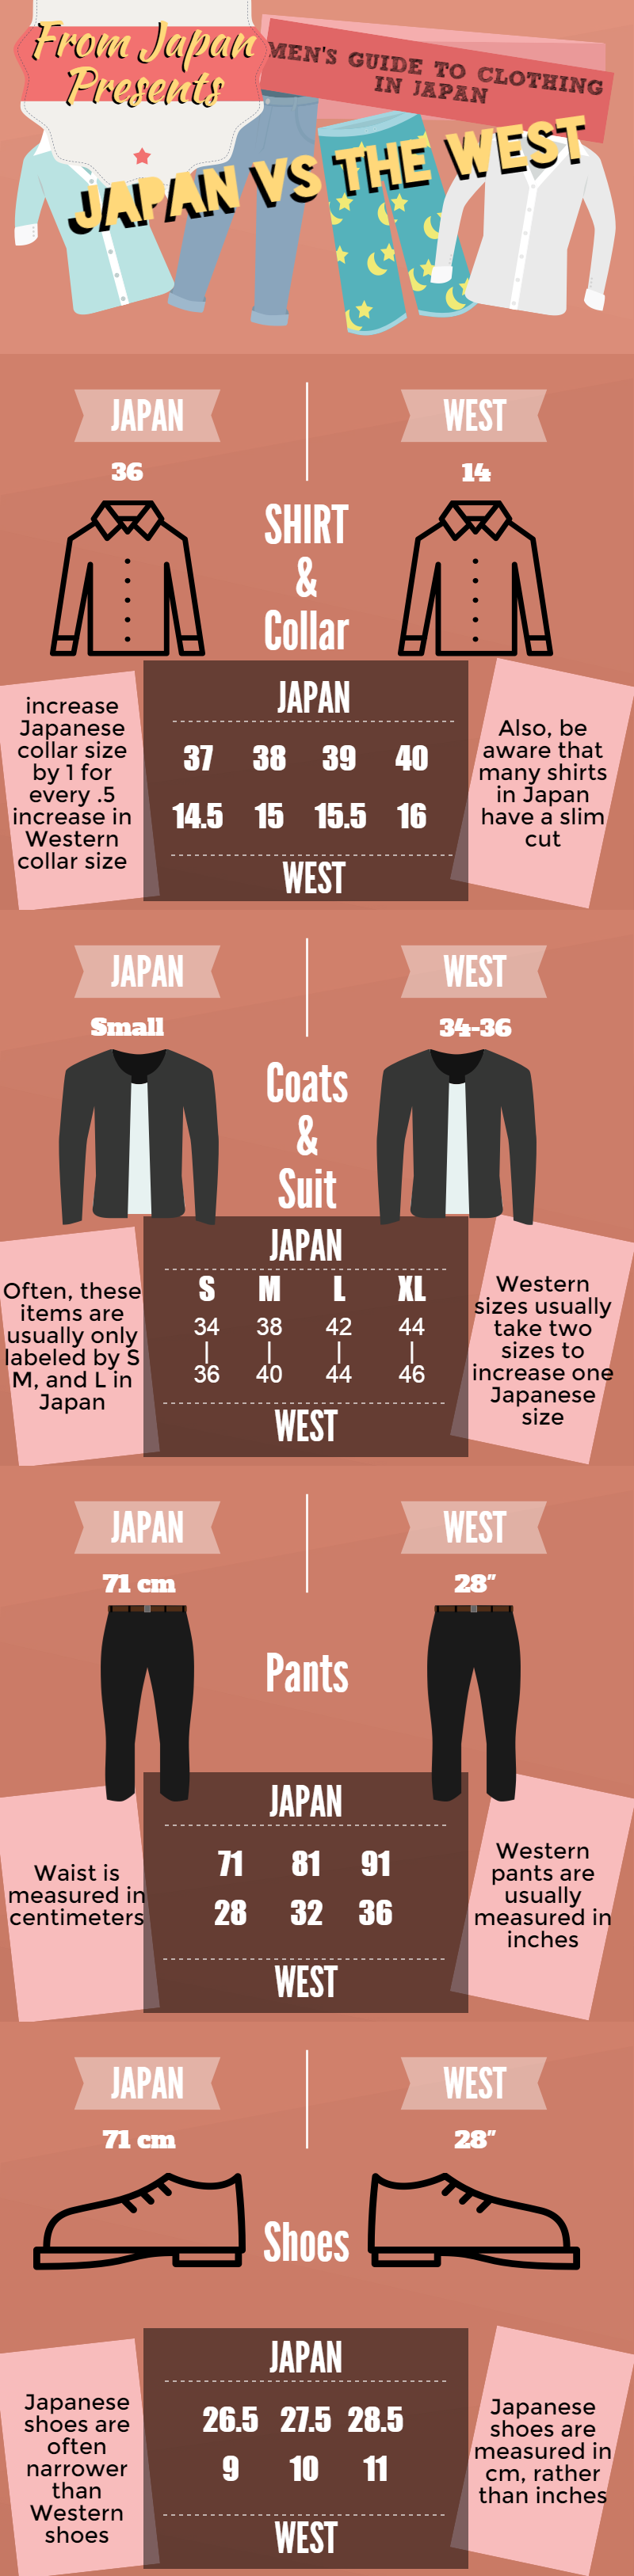 Japanese Clothing And Shoe Sizing Guide Important For Online